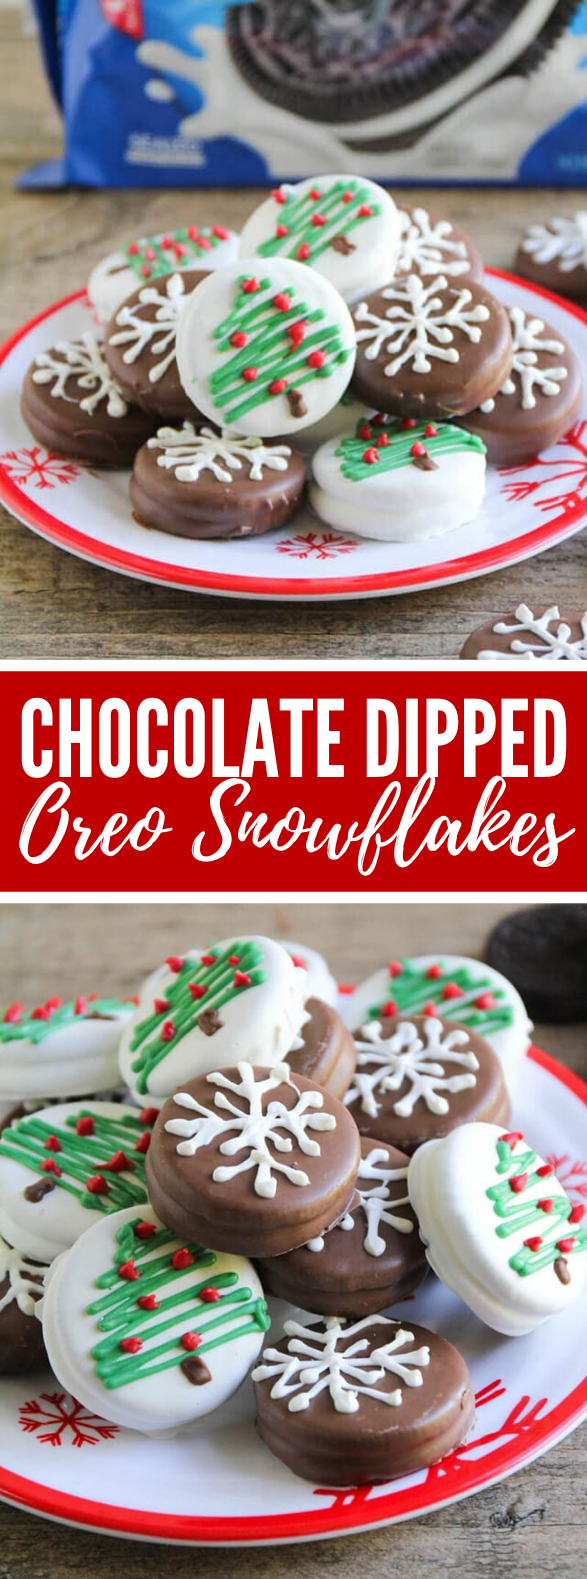 CHOCOLATE DIPPED OREO SNOWFLAKES #cookies #christmas